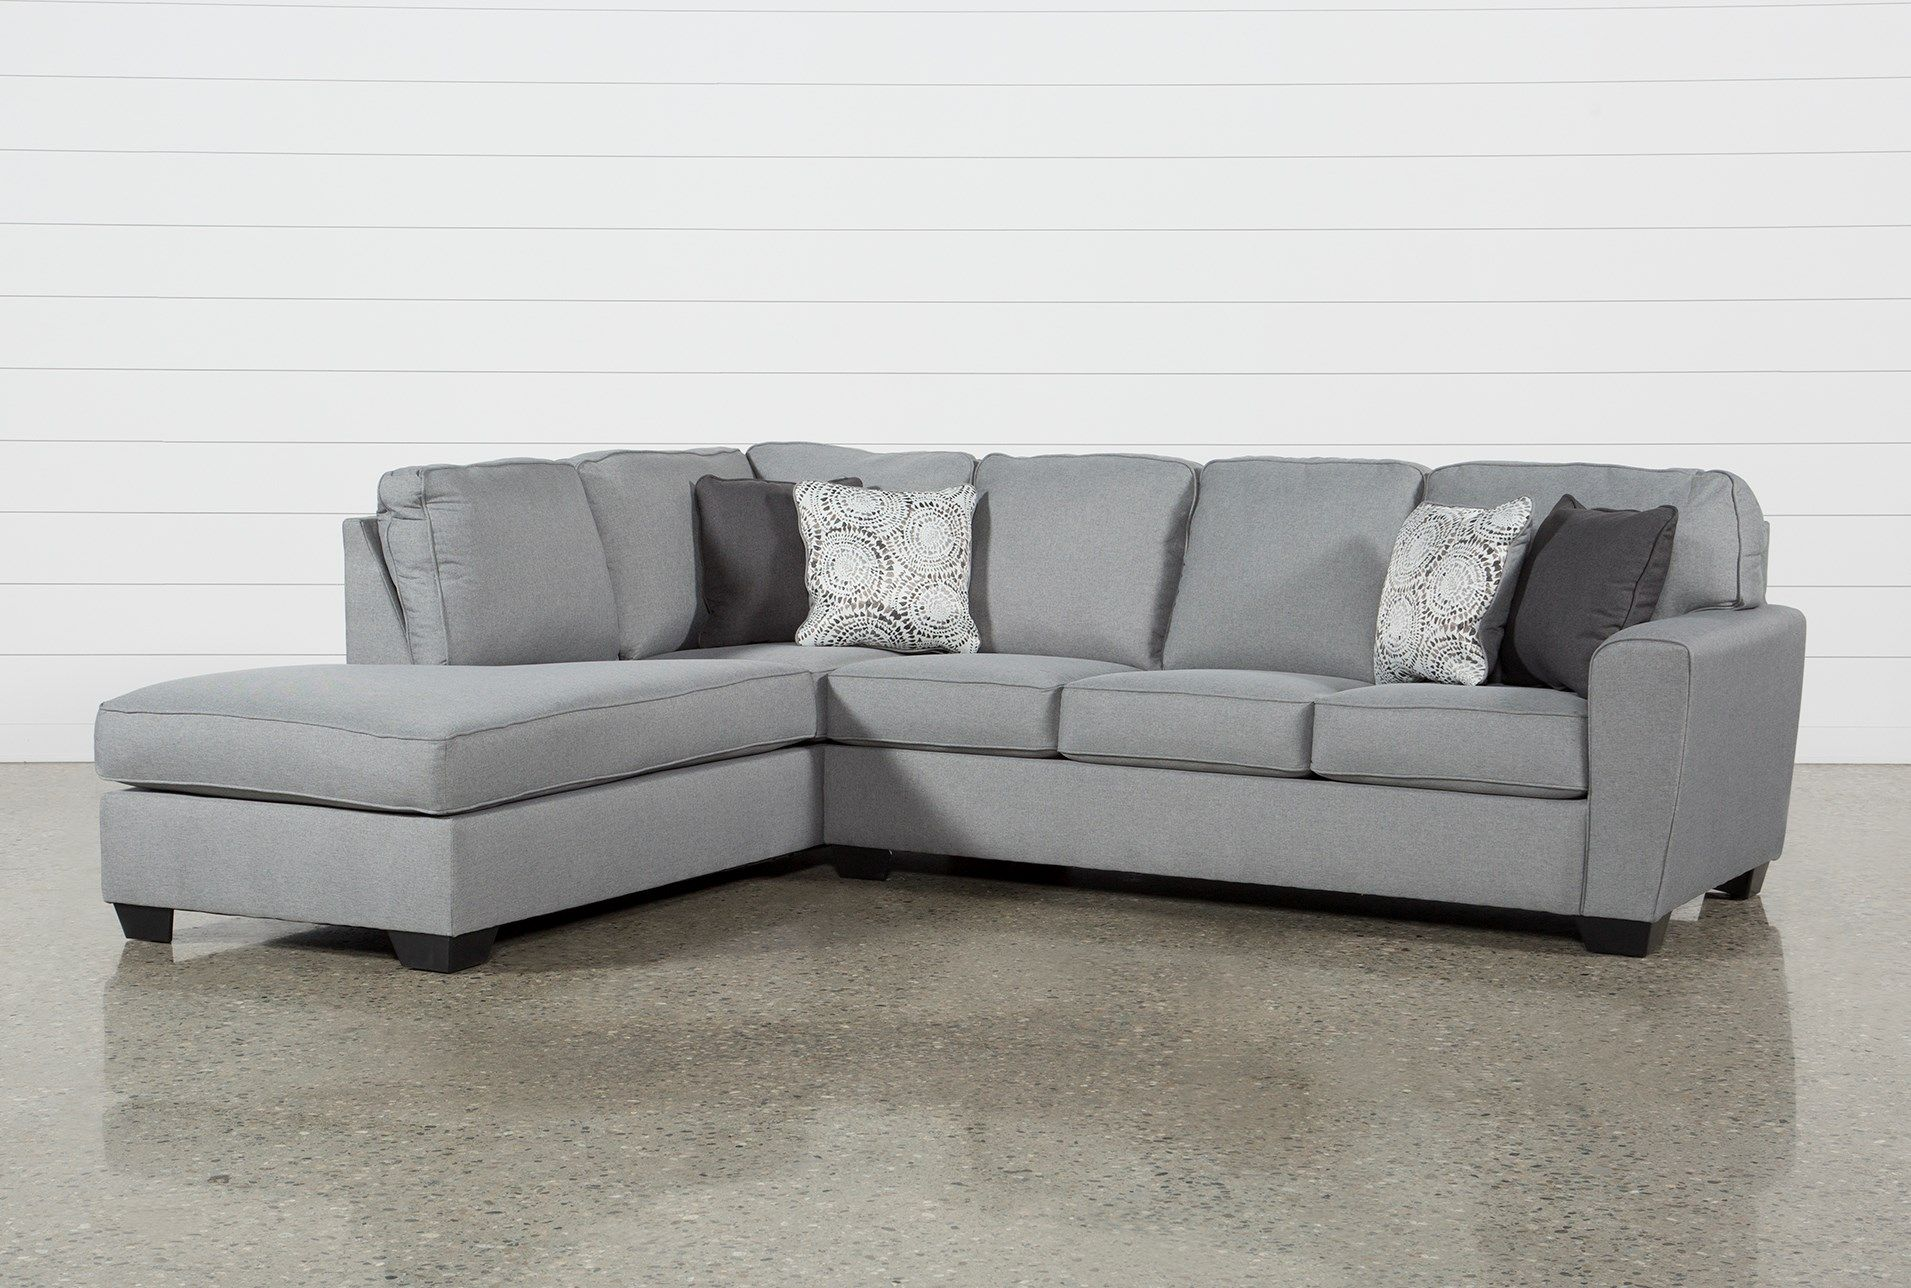 Best Ashley Mcdade Ash 2 Piece Sectional Sofa With Left Arm 400 x 300